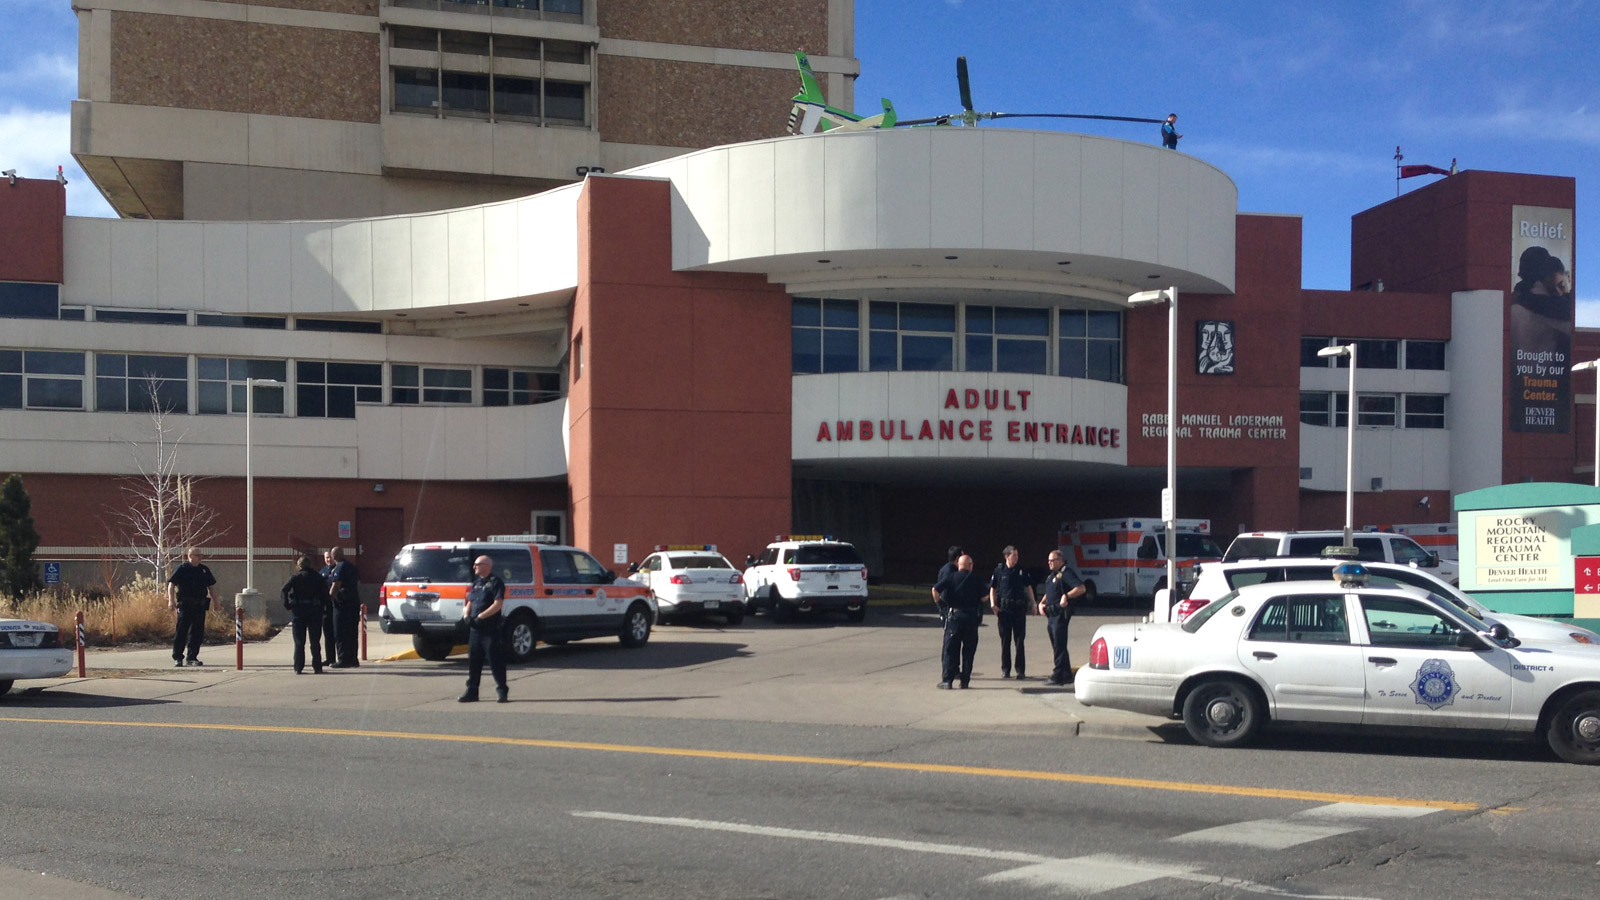 Police on patrol outside Denver Health Medical Center (credit: CBS)